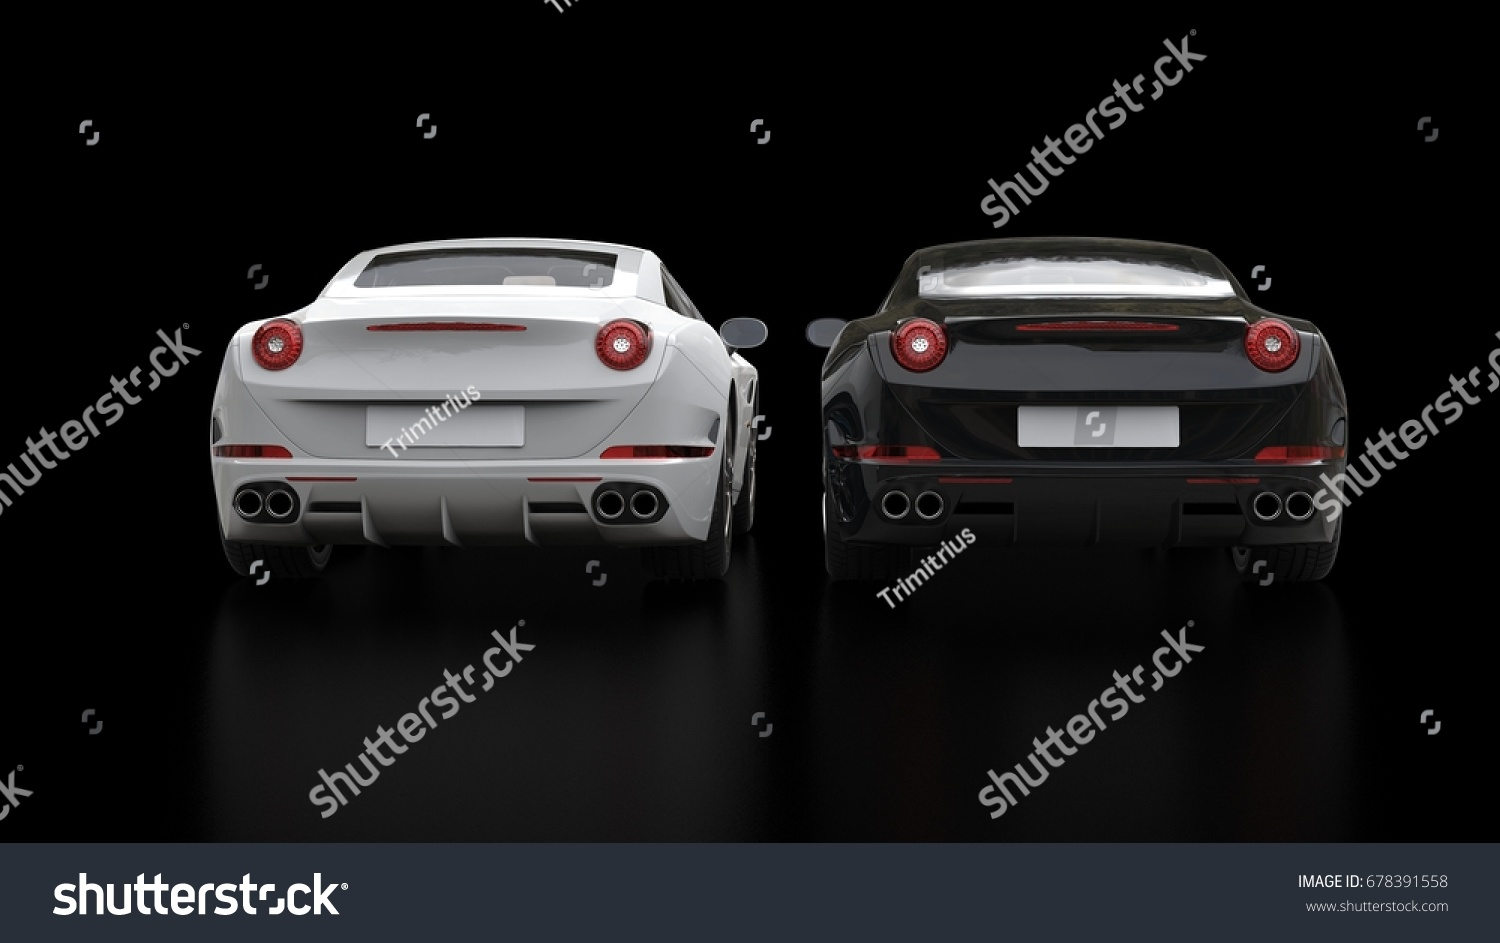 Cool Black And White Super Sports Cars   Back View   3D Illustration